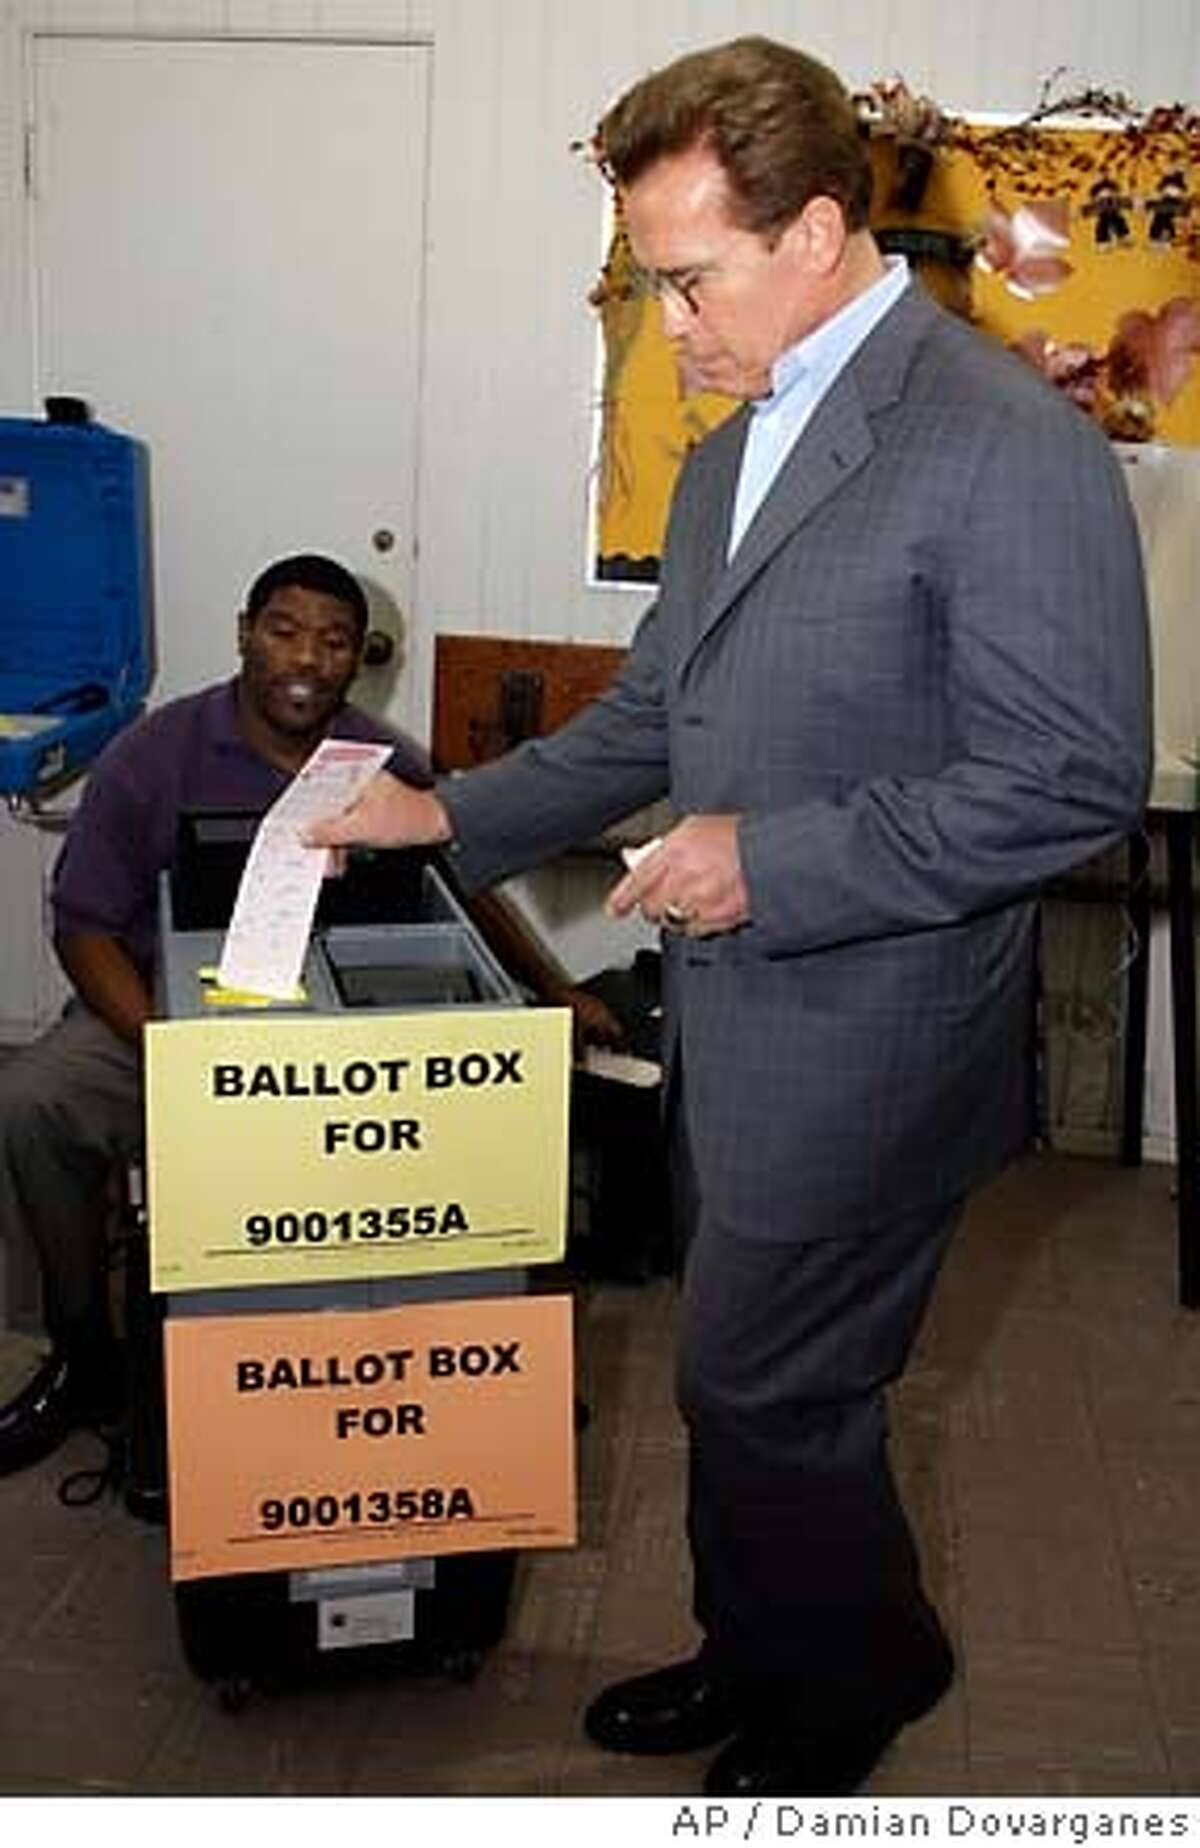 Republican California Gov. Arnold Schwarzenegger casts his vote at the Crestwood Hills Recreation Center in Los Angeles Tuesday, Nov. 7, 2006. Democrat Phil Angelides is running against Schwarzenegger. (AP Photo/Damian Dovarganes, Pool)